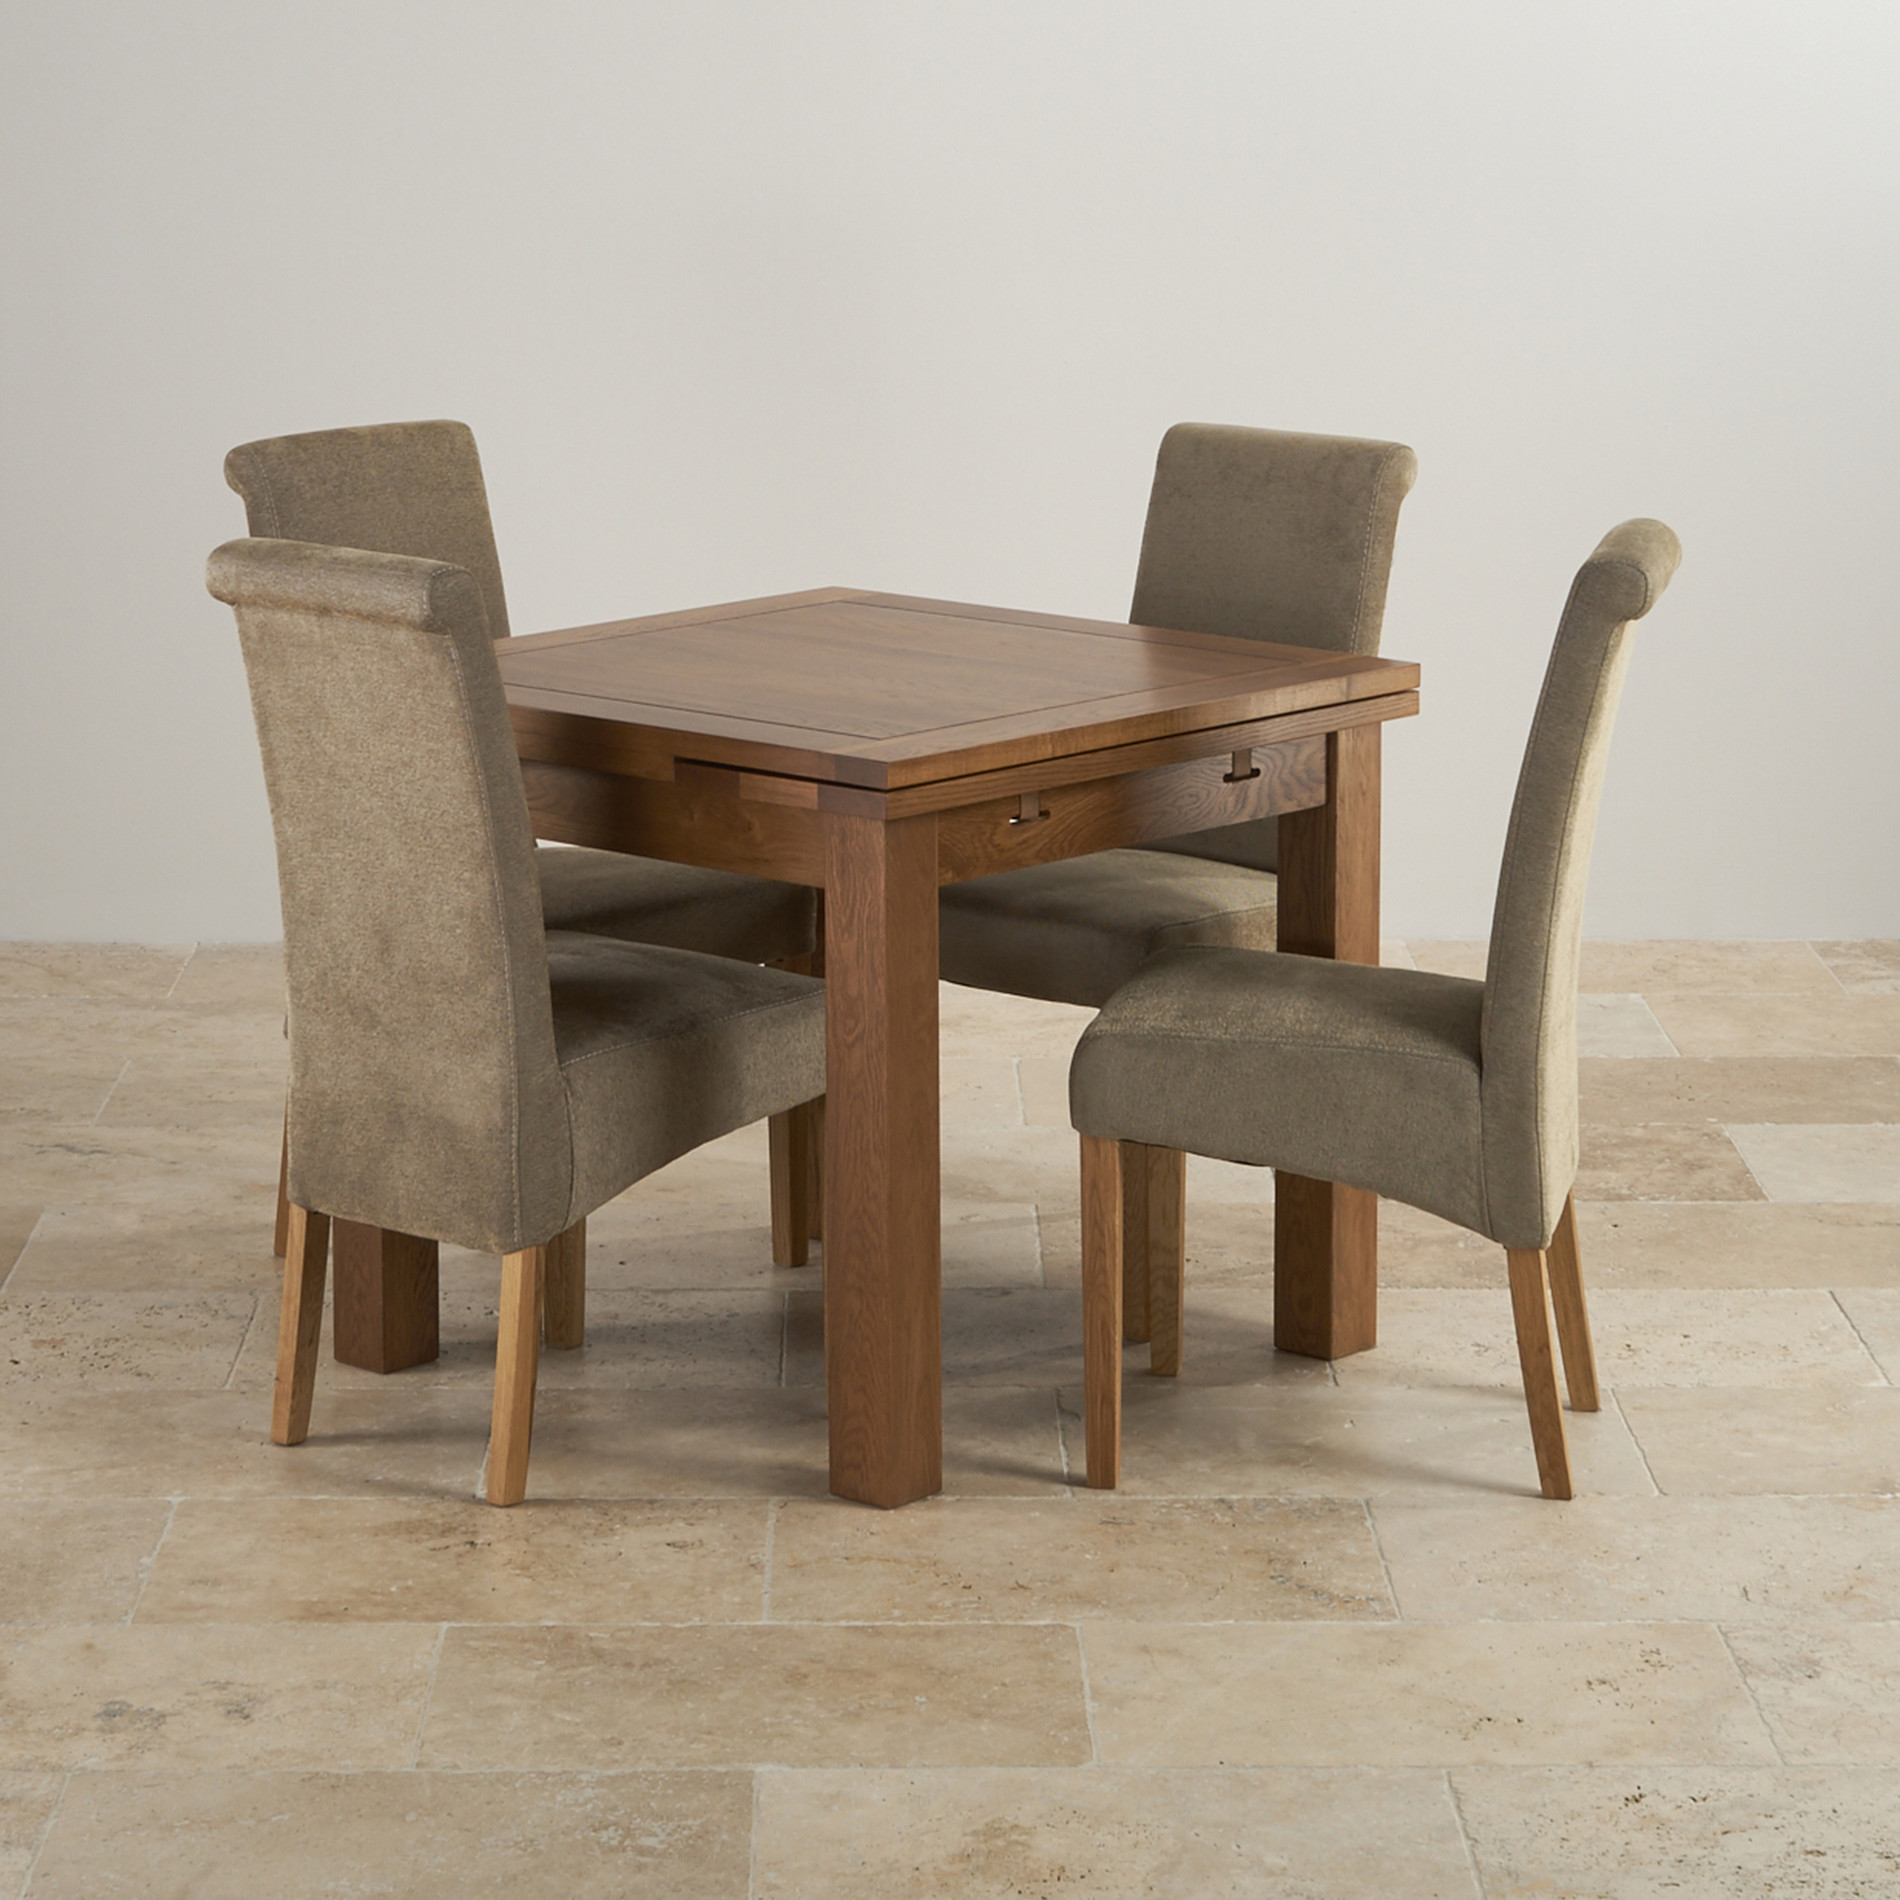 Rustic Dining Set in Real Oak Extending Table 4 Sage Chairs : rustic solid oak dining set 3ft extending table with 4 scroll back plain sage fabric chairs 56f2c60d505f2 from www.oakfurnitureland.co.uk size 1900 x 1900 jpeg 536kB